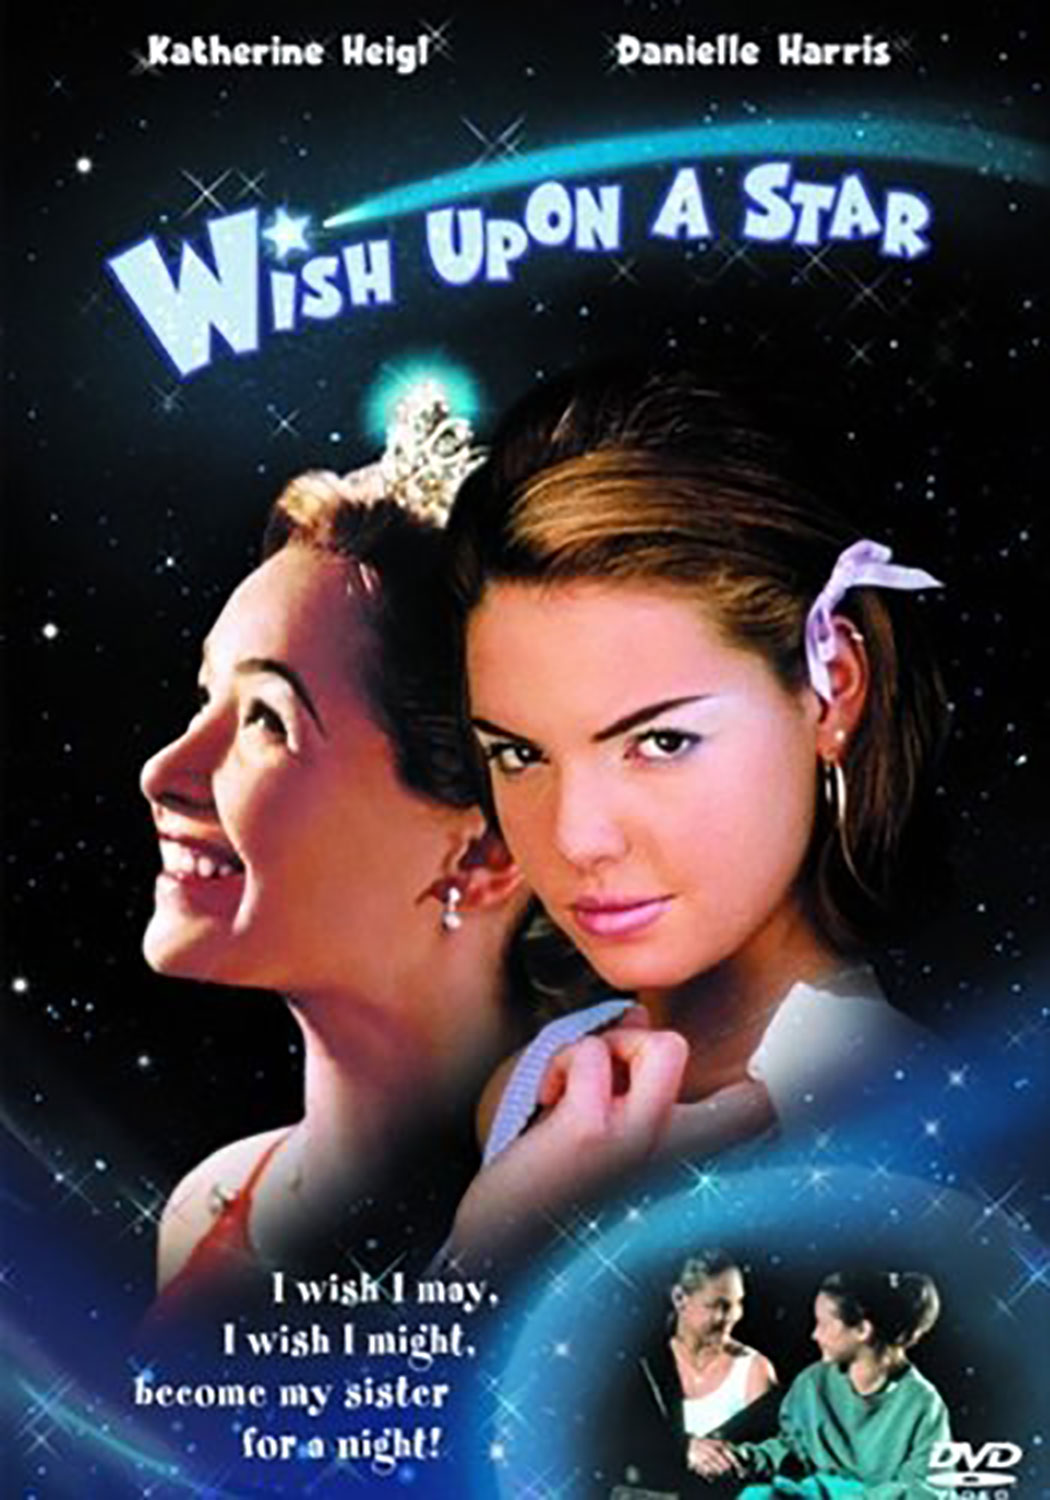 Affiche Poster etoile filante wish upon star disney channel